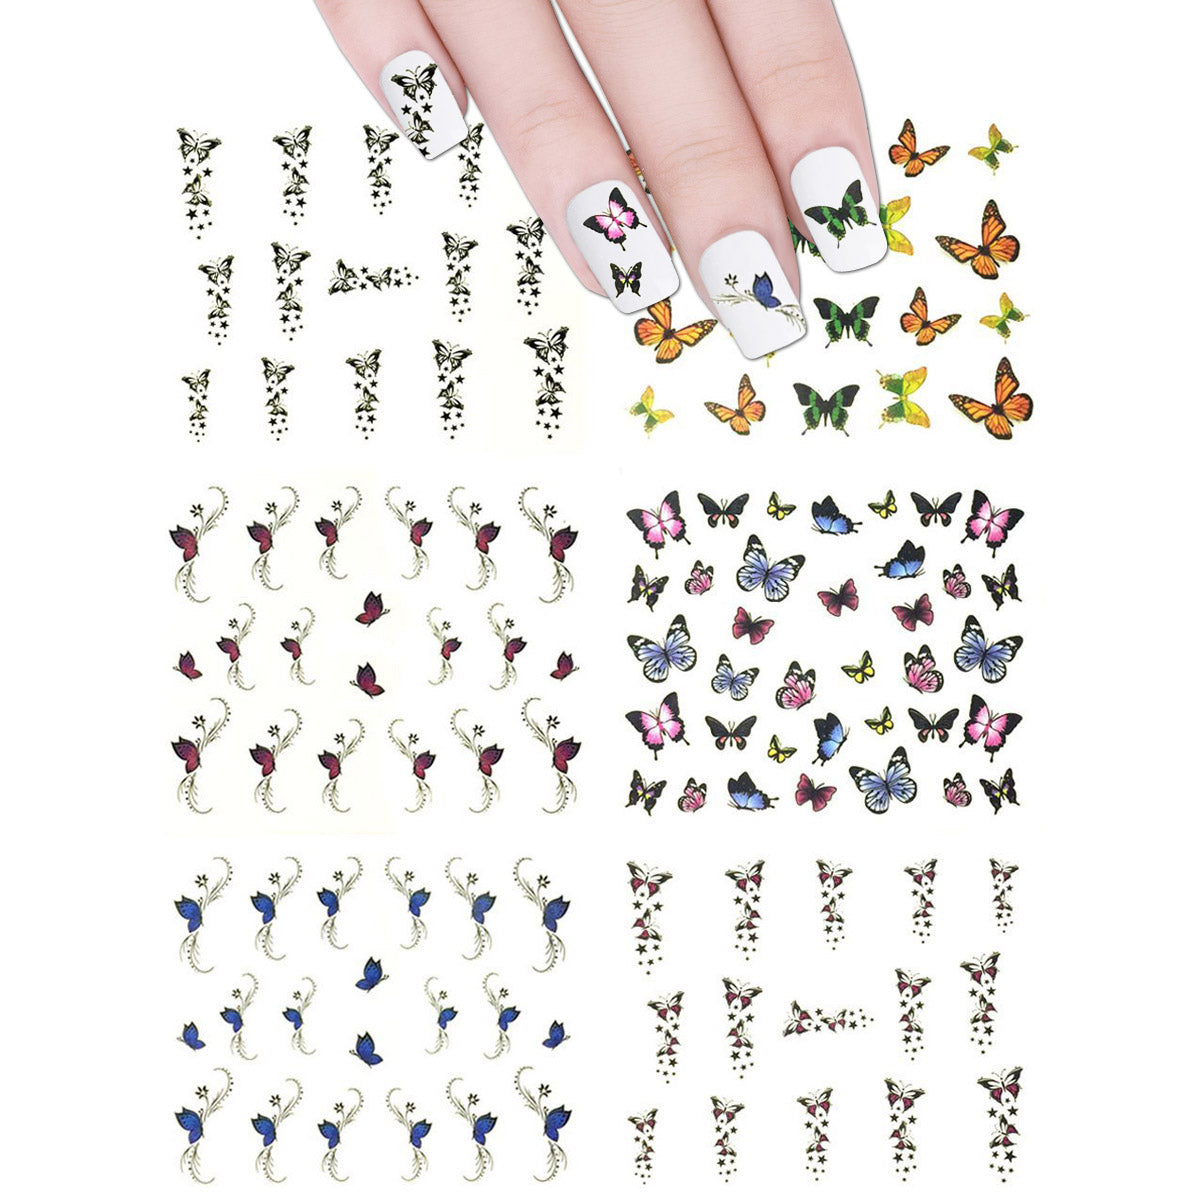 Wrapables Nail Art Water Nail Stickers Water Transfer Stickers / Nail Art Tattoos / Nail Art Decals, Butterflies (6 sheets)